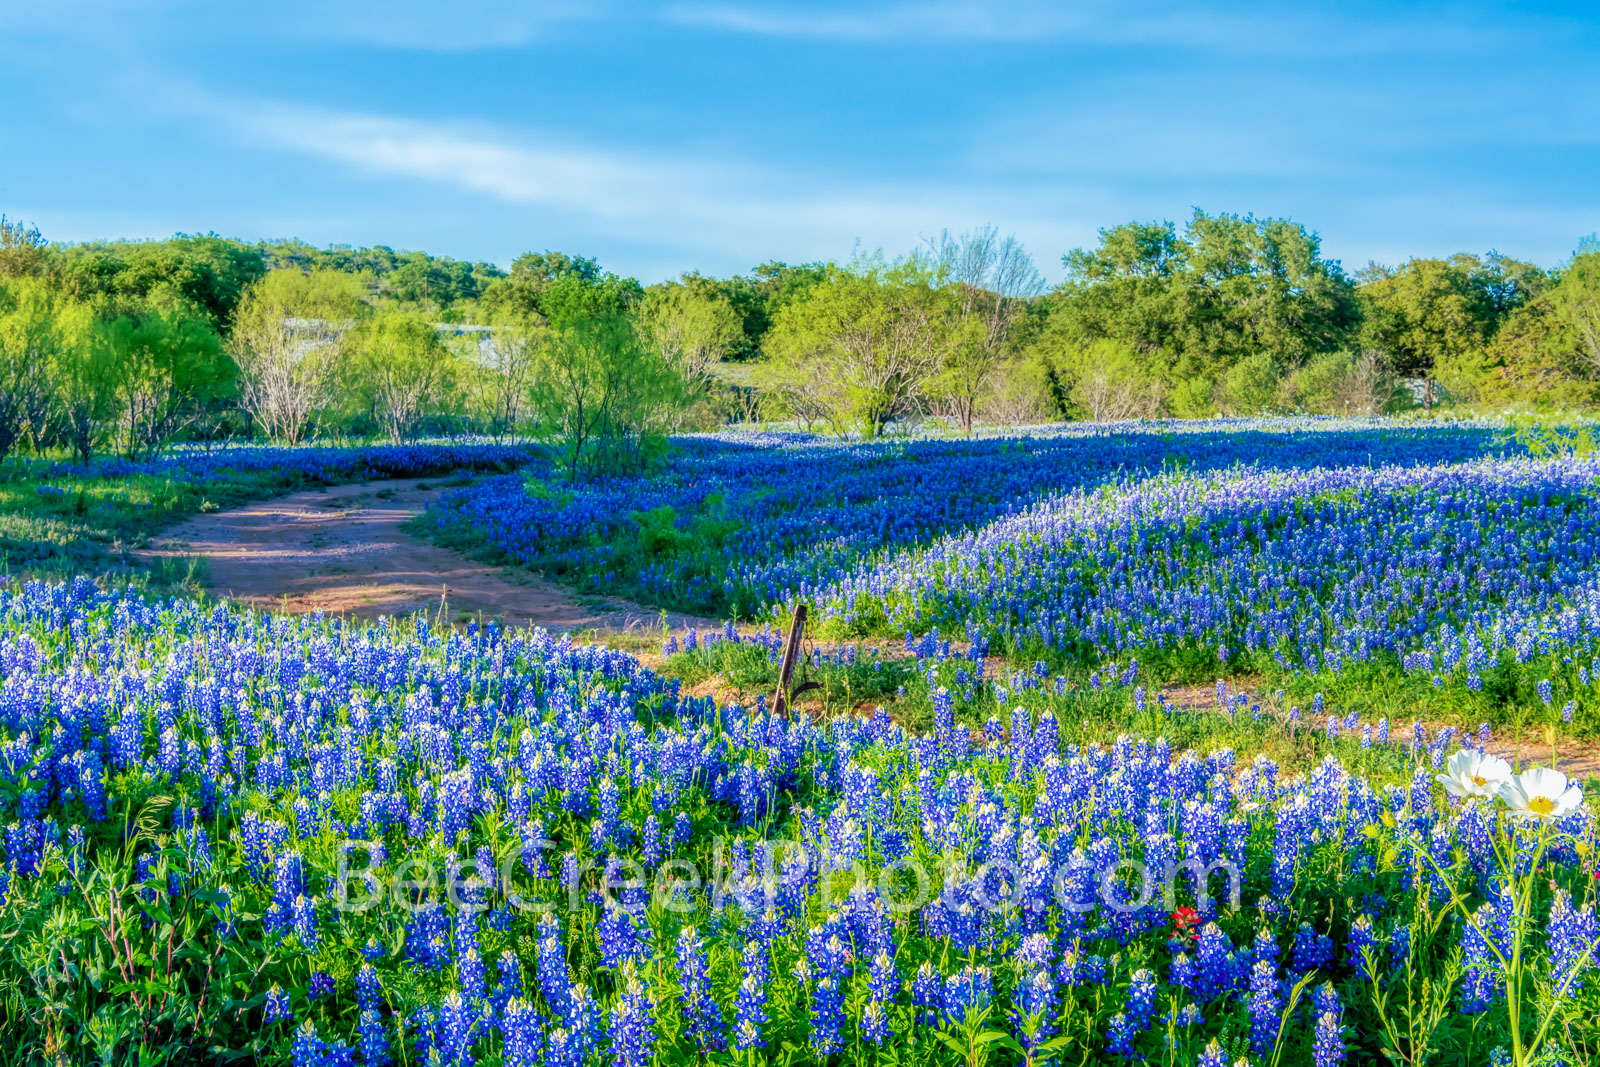 bluebonnets, texas bluebonnets, bluebonnet, wildflowers, texas wildflowers, texas hill country,, hill country, road, road side bluebonnets, pictures of bluebonnets, bluebonnets in the texas hill count